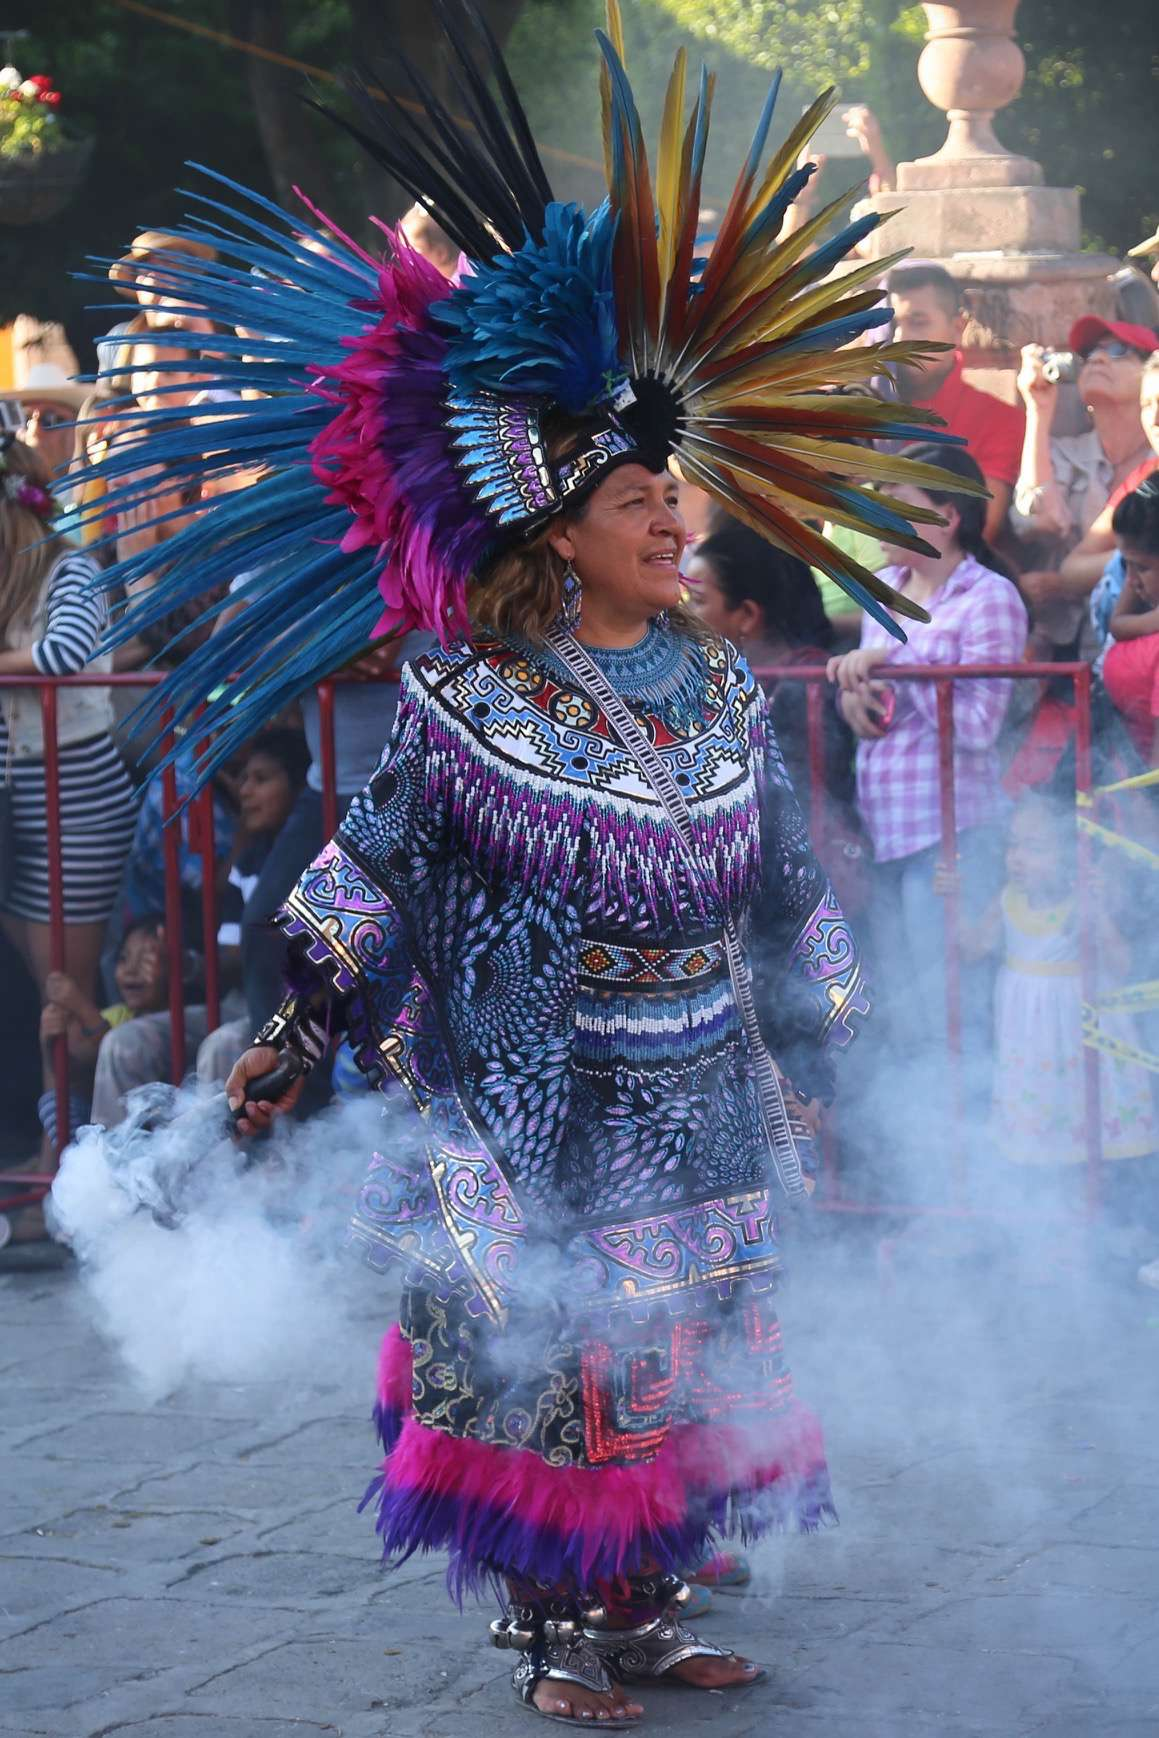 This woman is smokin' hot in her costume as she pauses in El Jardin during a parade in San Miguel de Allende, Mexico.